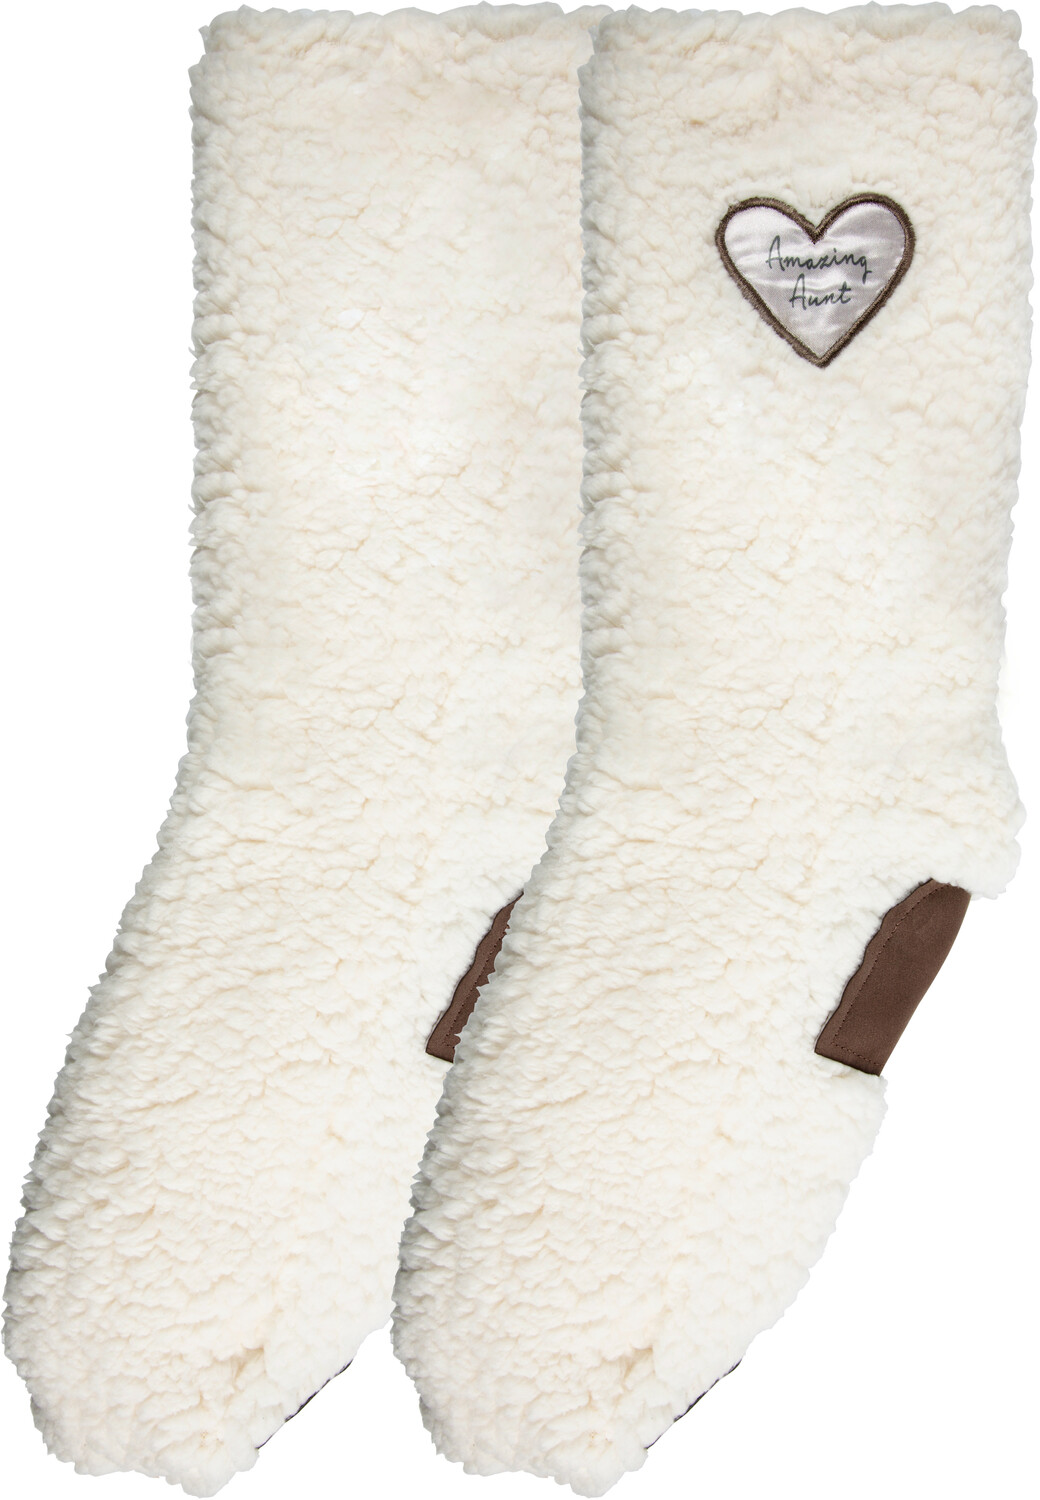 Amazing Aunt by Comfort Collection - Amazing Aunt - One Size Fits Most Sherpa Slipper